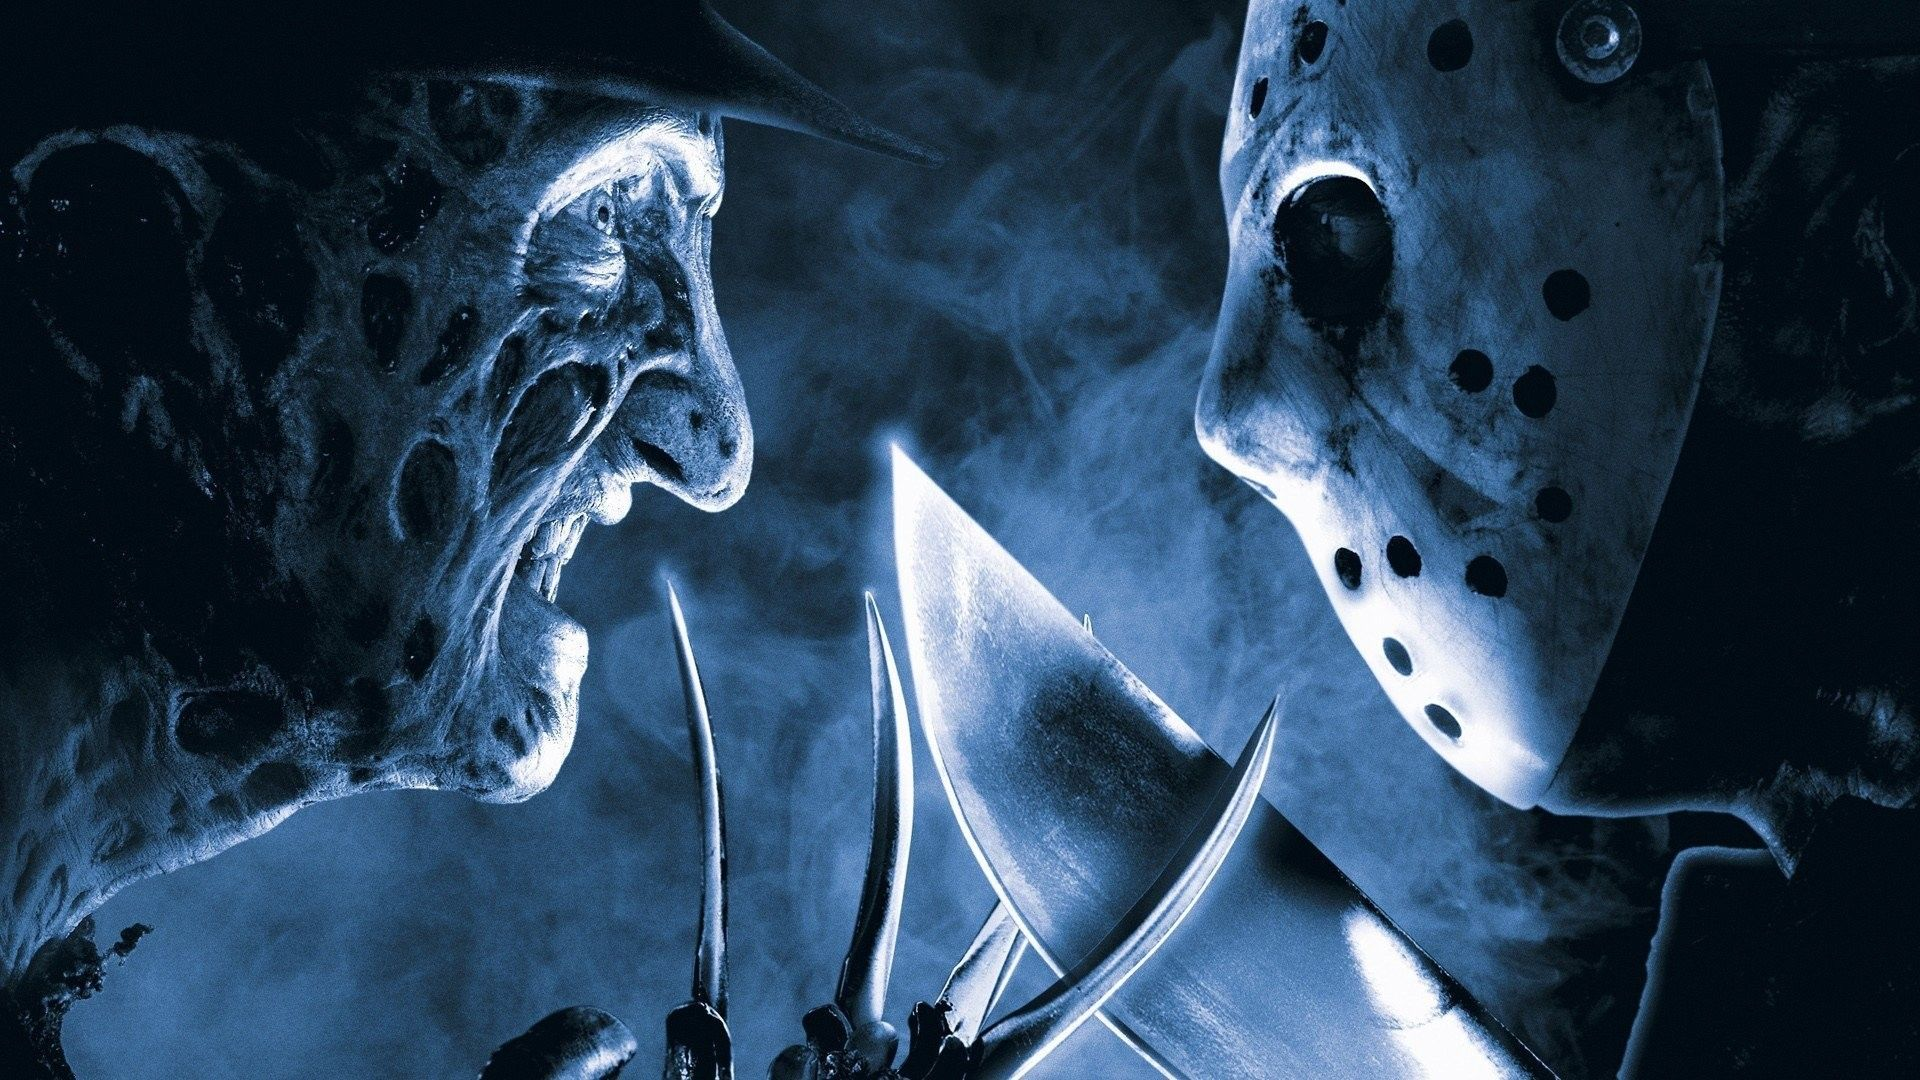 1920x1080 Horror Movie Icons Wallpaper 1600x900 Photo 11 Horror Movie Icons Jason Voorhees Freddy Krueger